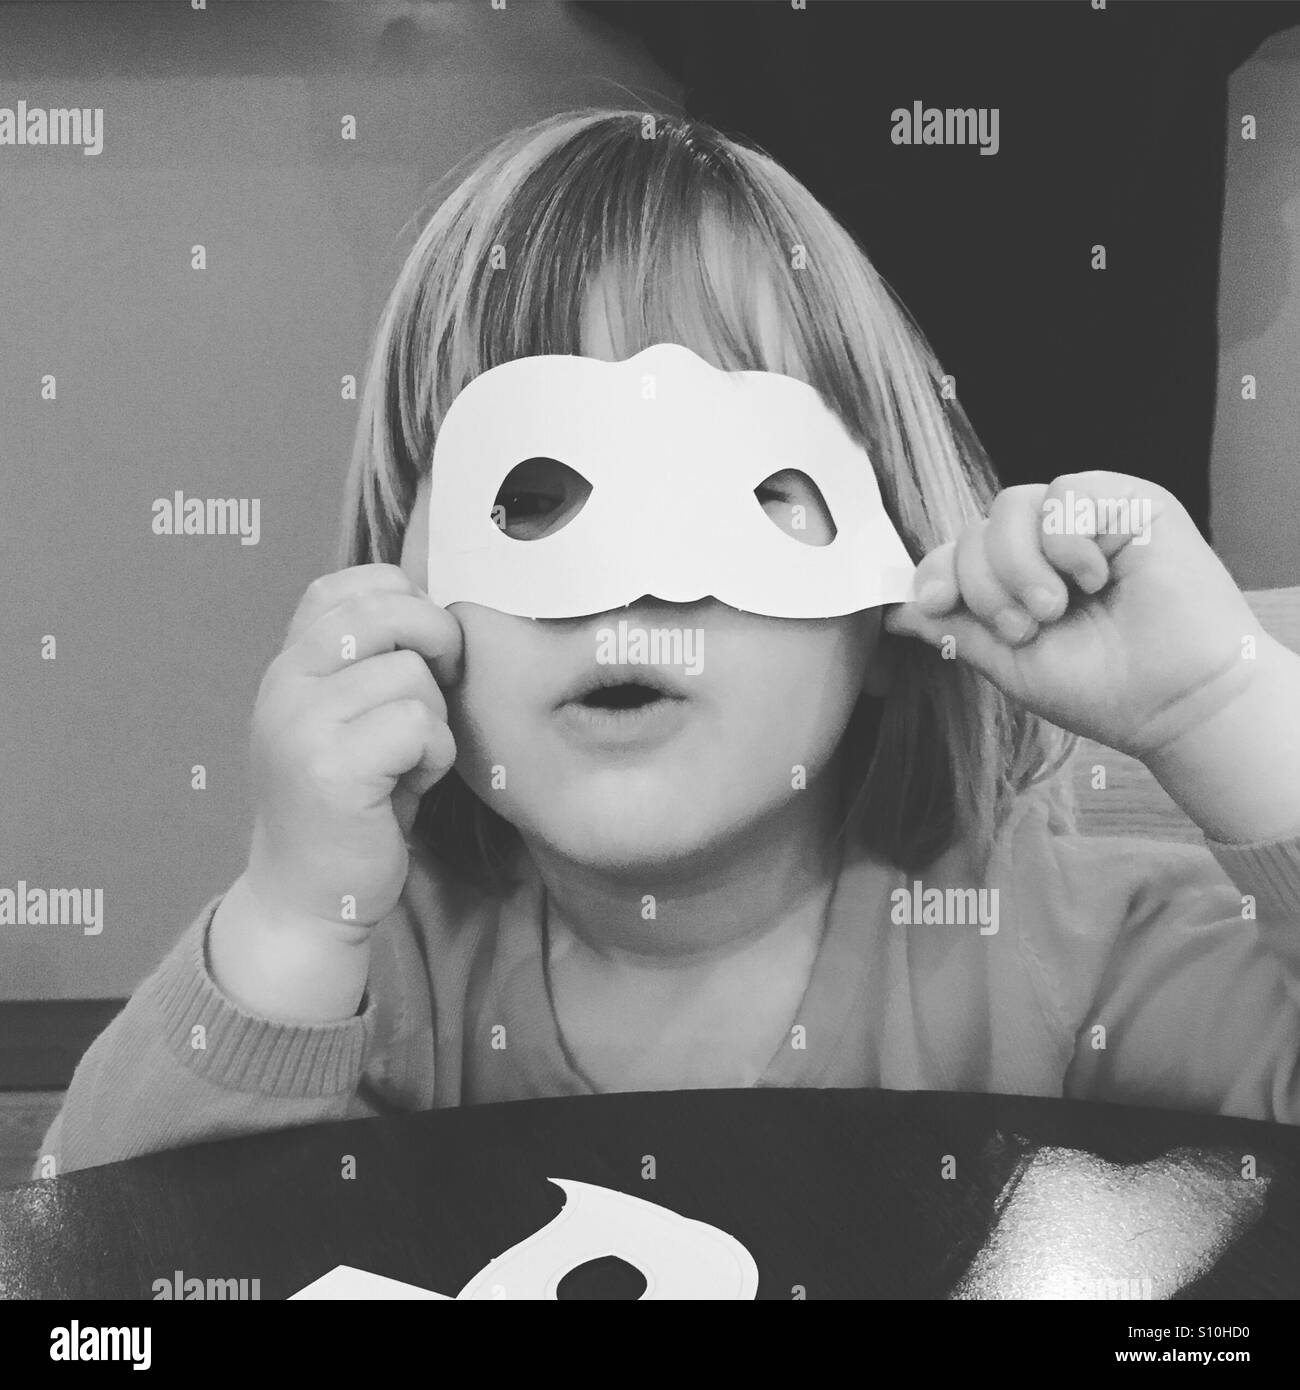 Toddler with mask - Stock Image